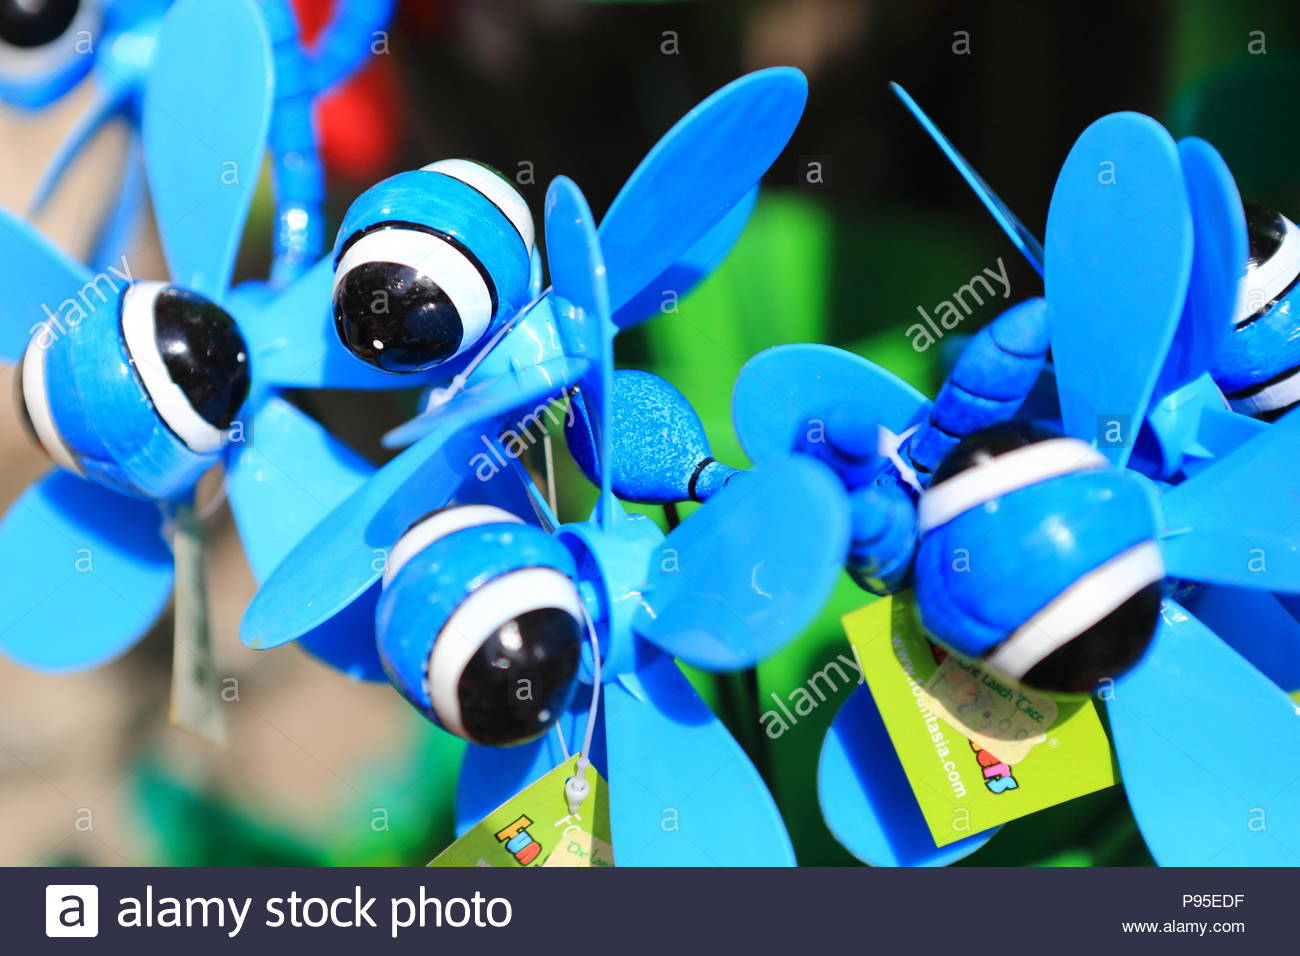 Novelty garden fun spinners at a store at Cartmel, Grange-Over-Sands, Cumbria, England. Summer July 2018 - Stock Image